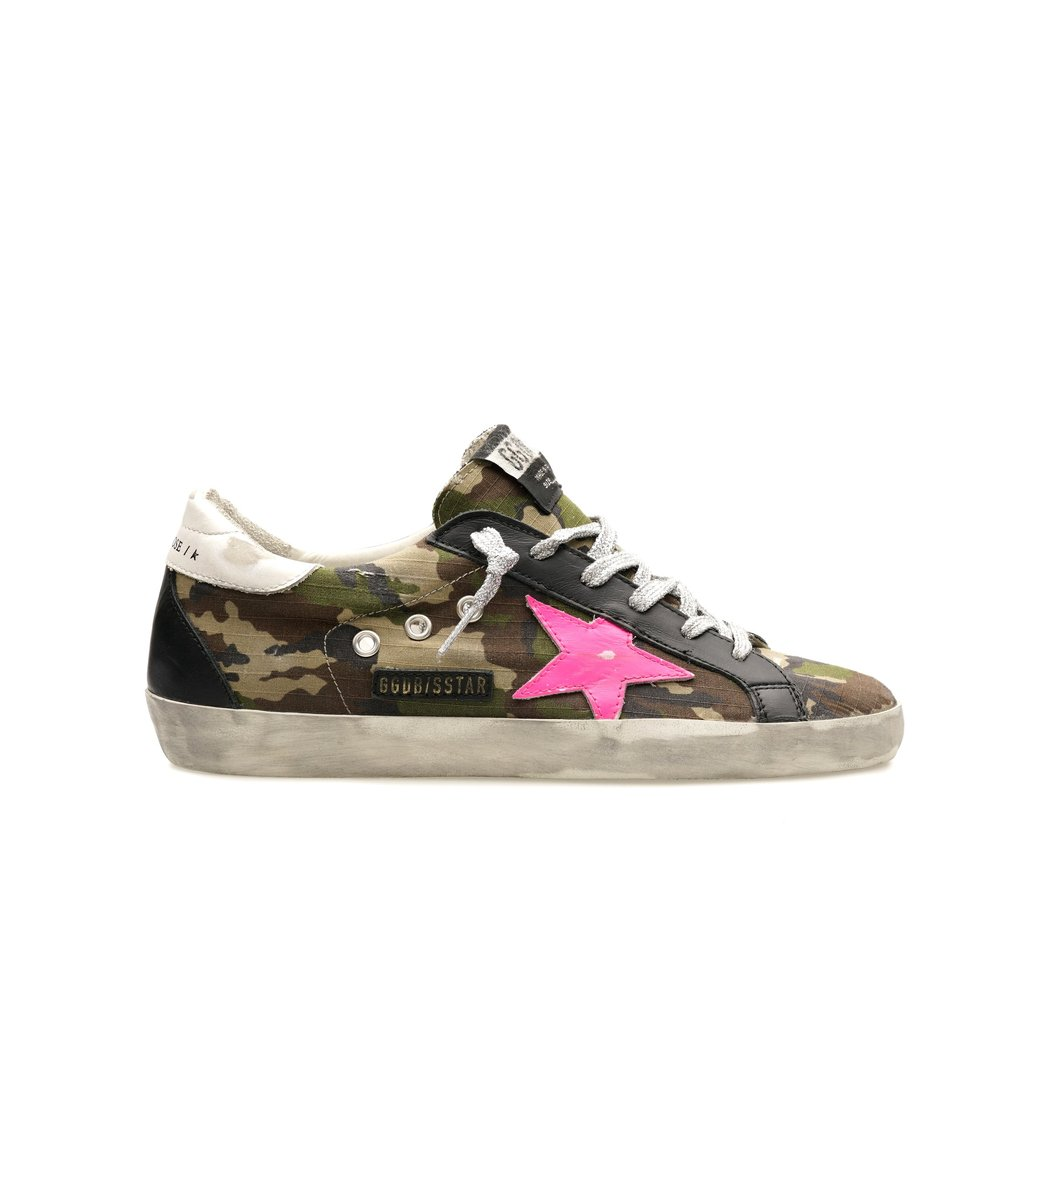 Golden Goose Superstar Sneaker in Green Camo/Fuxia Fluo/White/Black